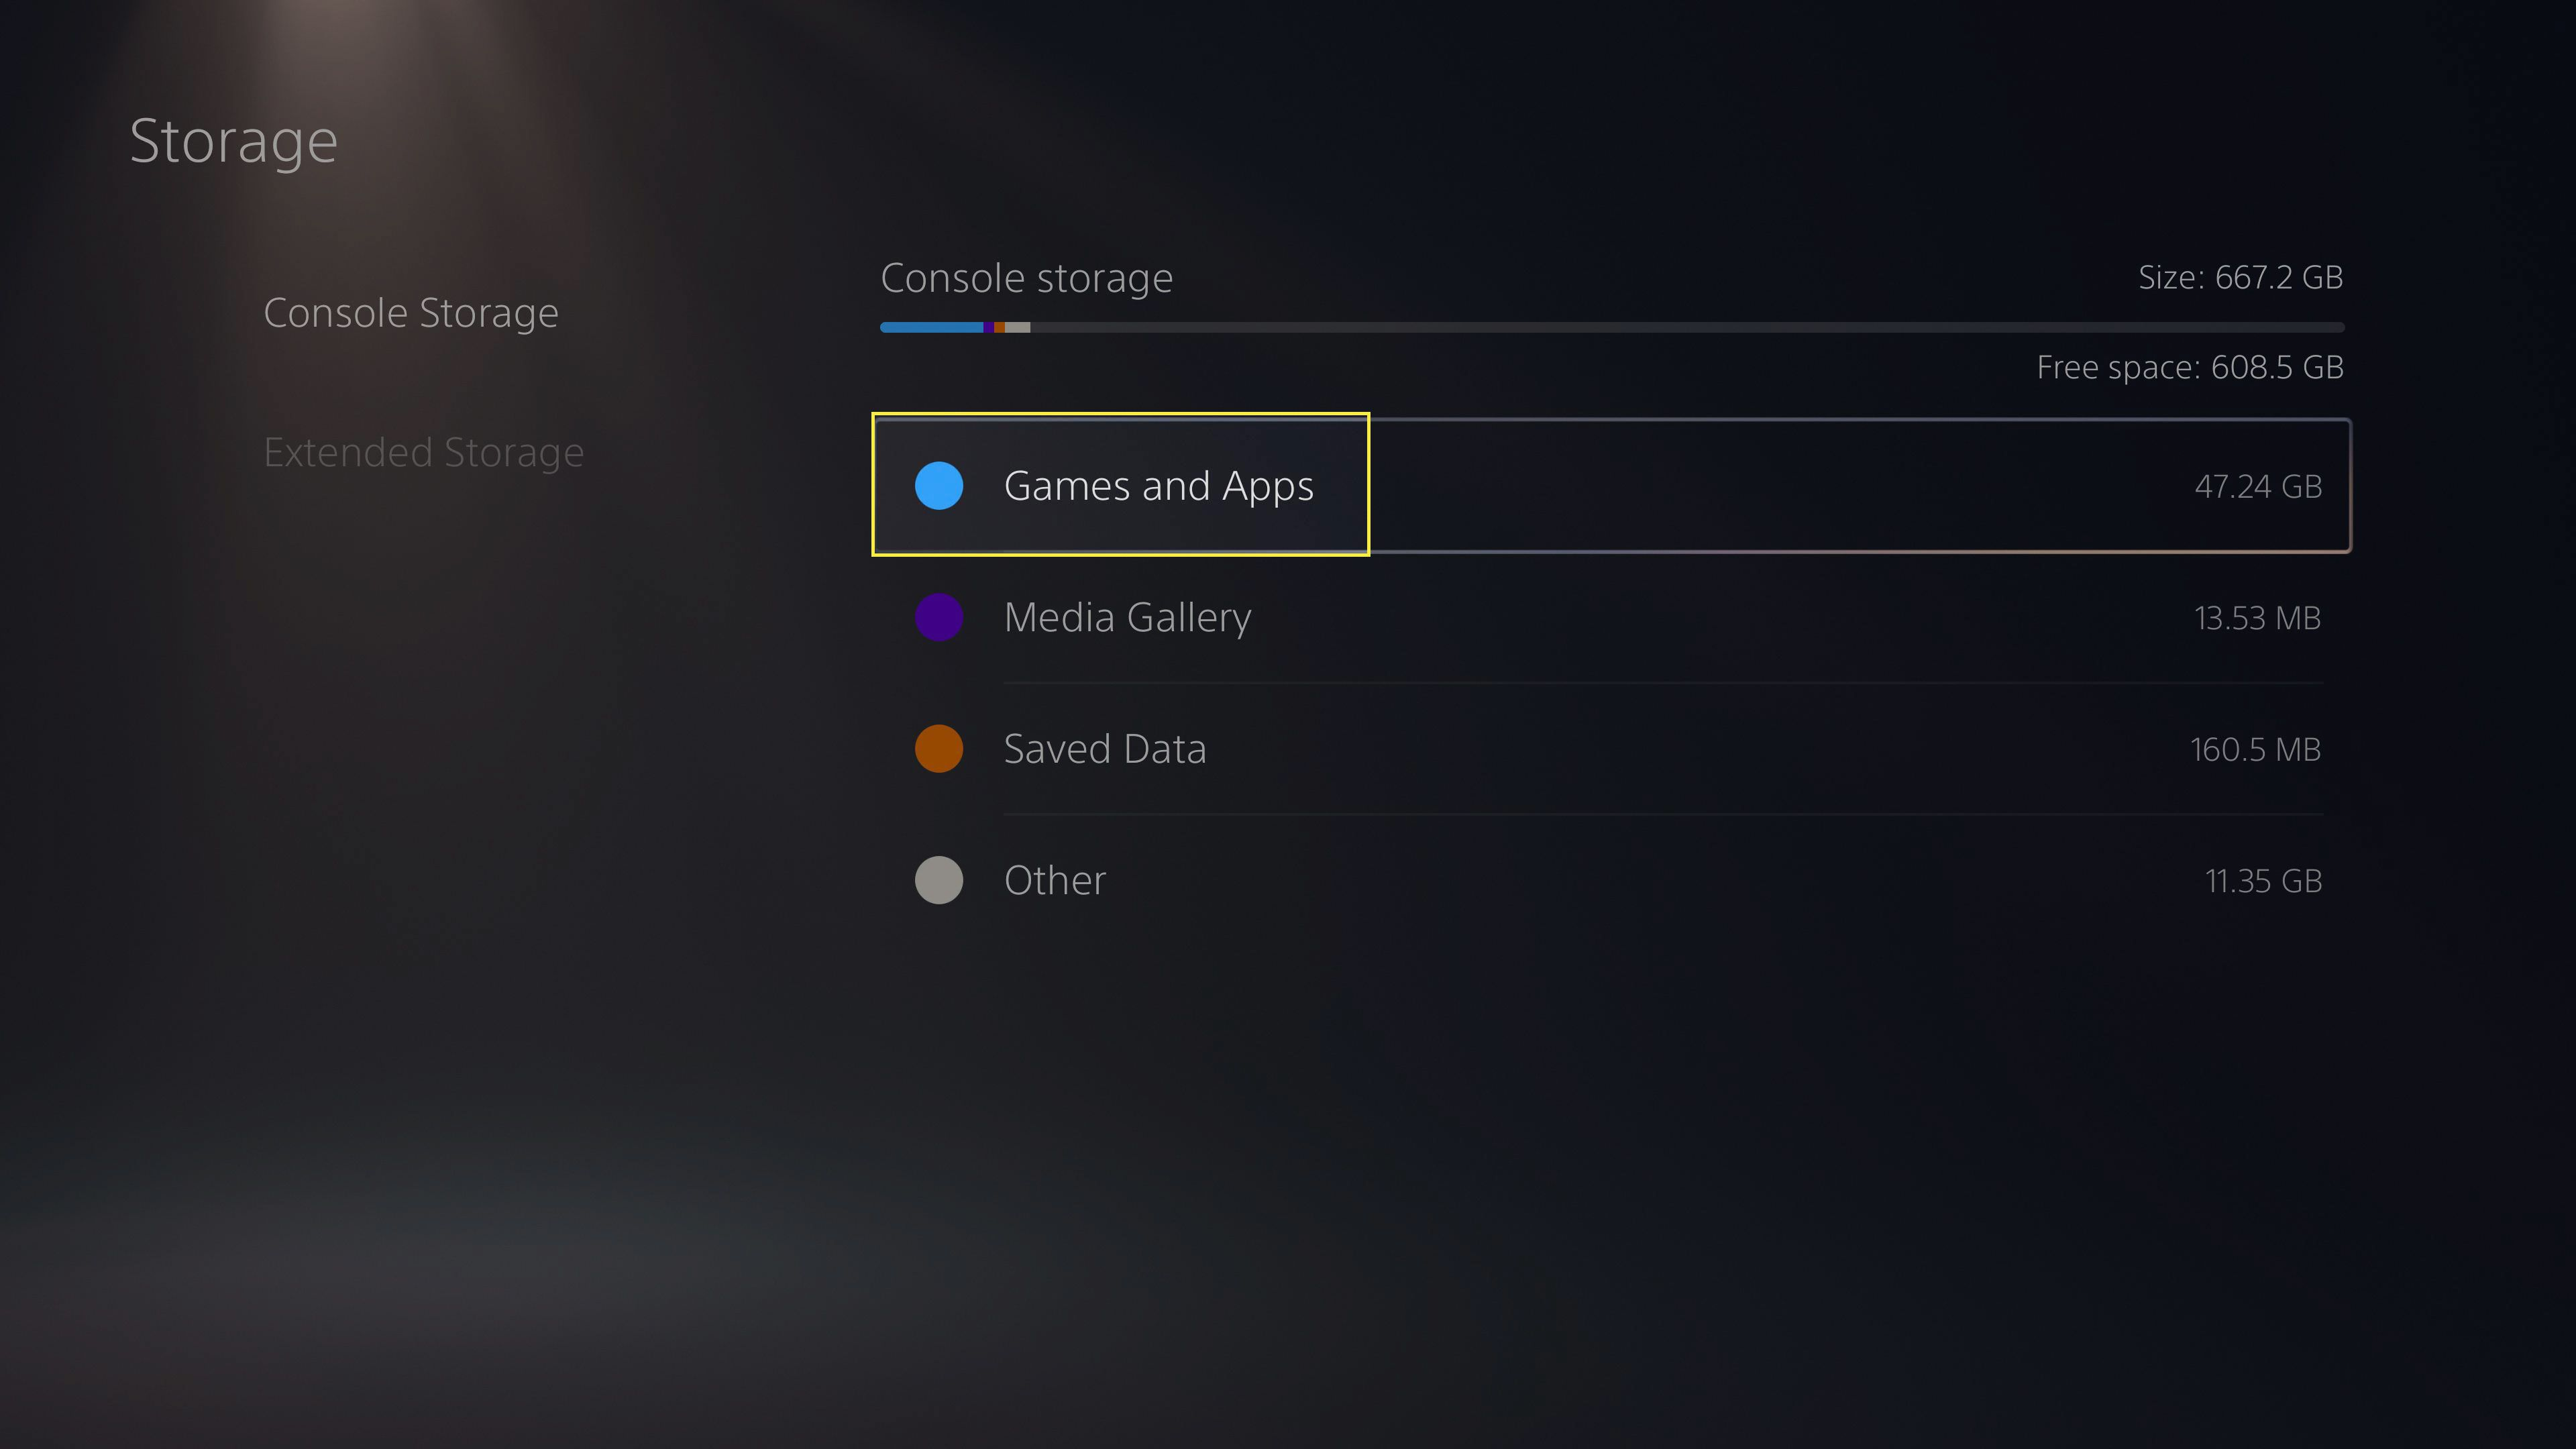 Games and Apps in Storage